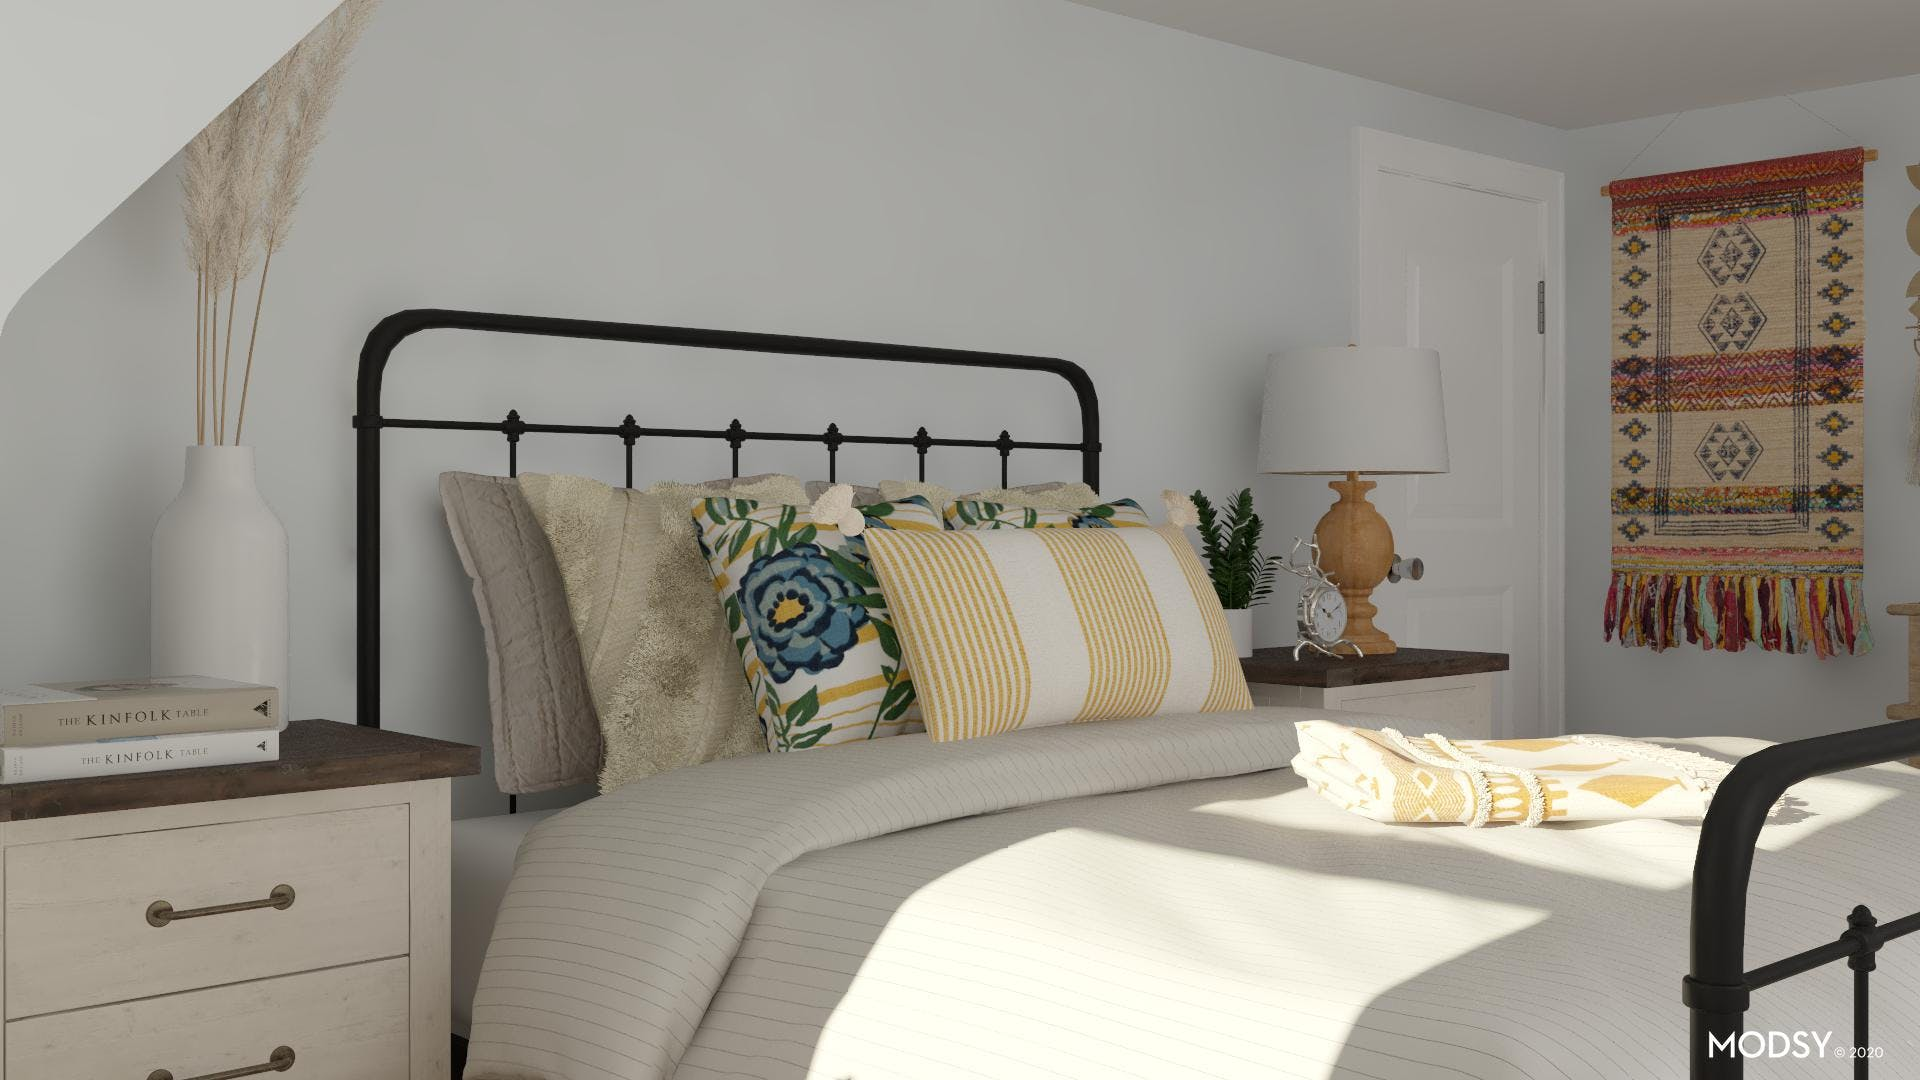 His and Her Side of the Bed: Rustic Design